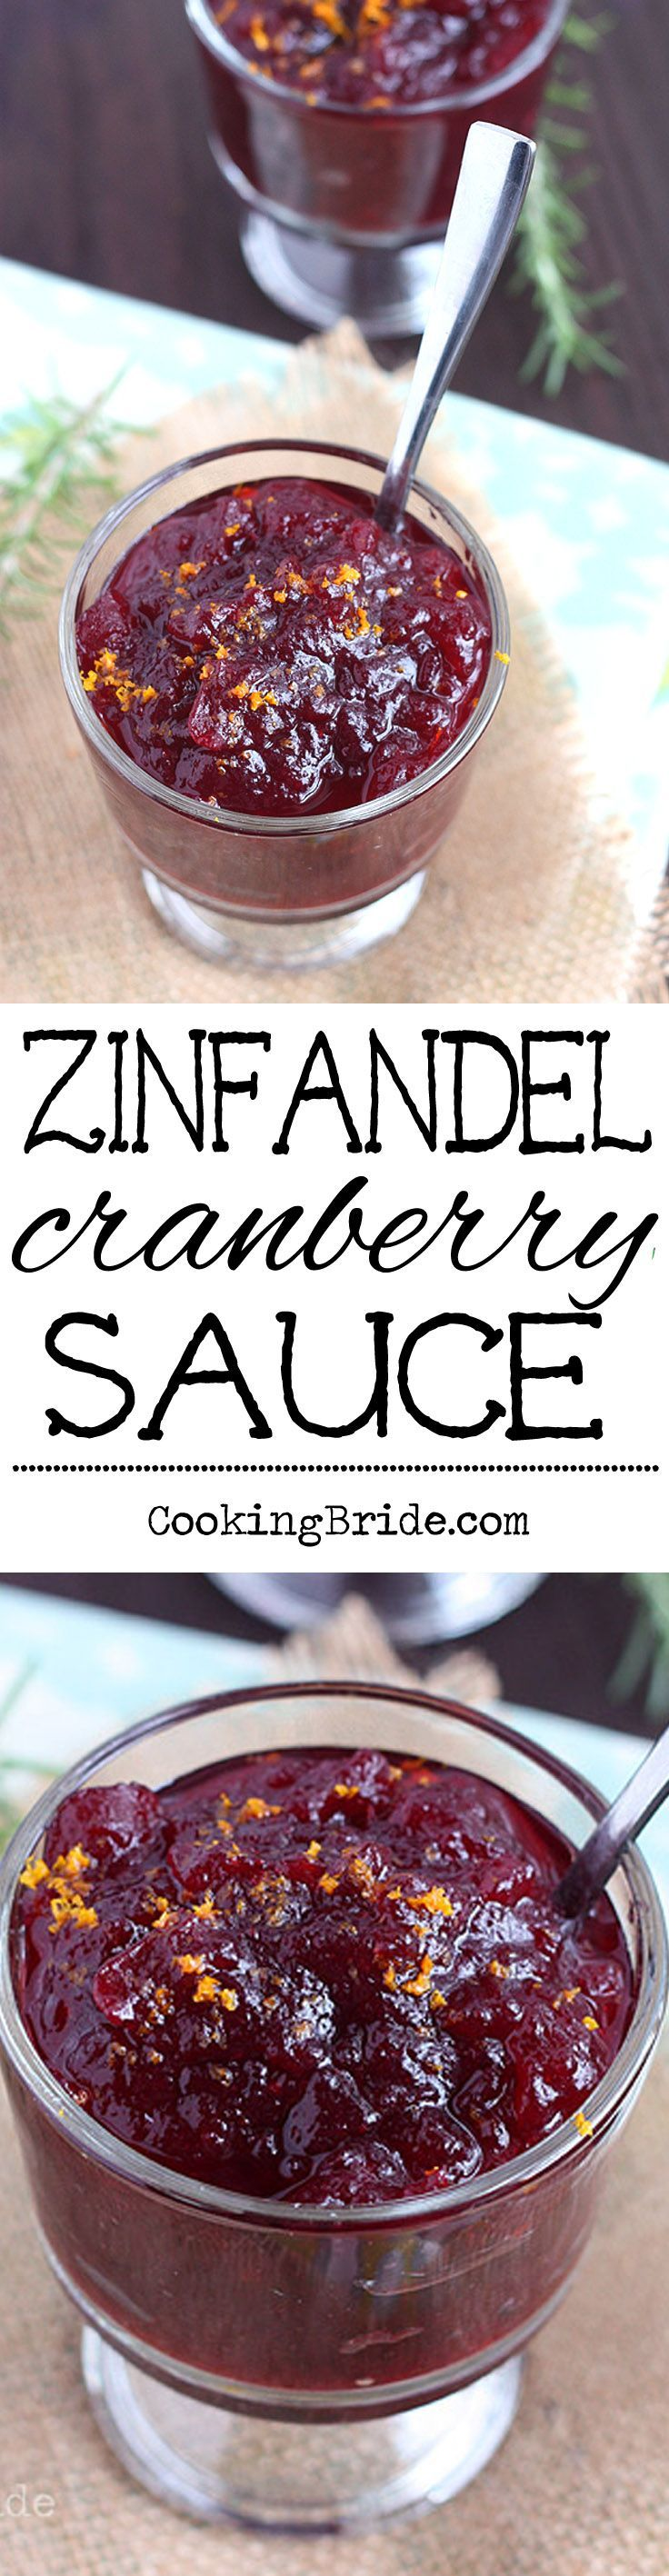 Homemade cranberry sauce is way better than canned. This recipe includes fruit juice, orange zest, and a splash of Zinfandel for added depth of flavor.